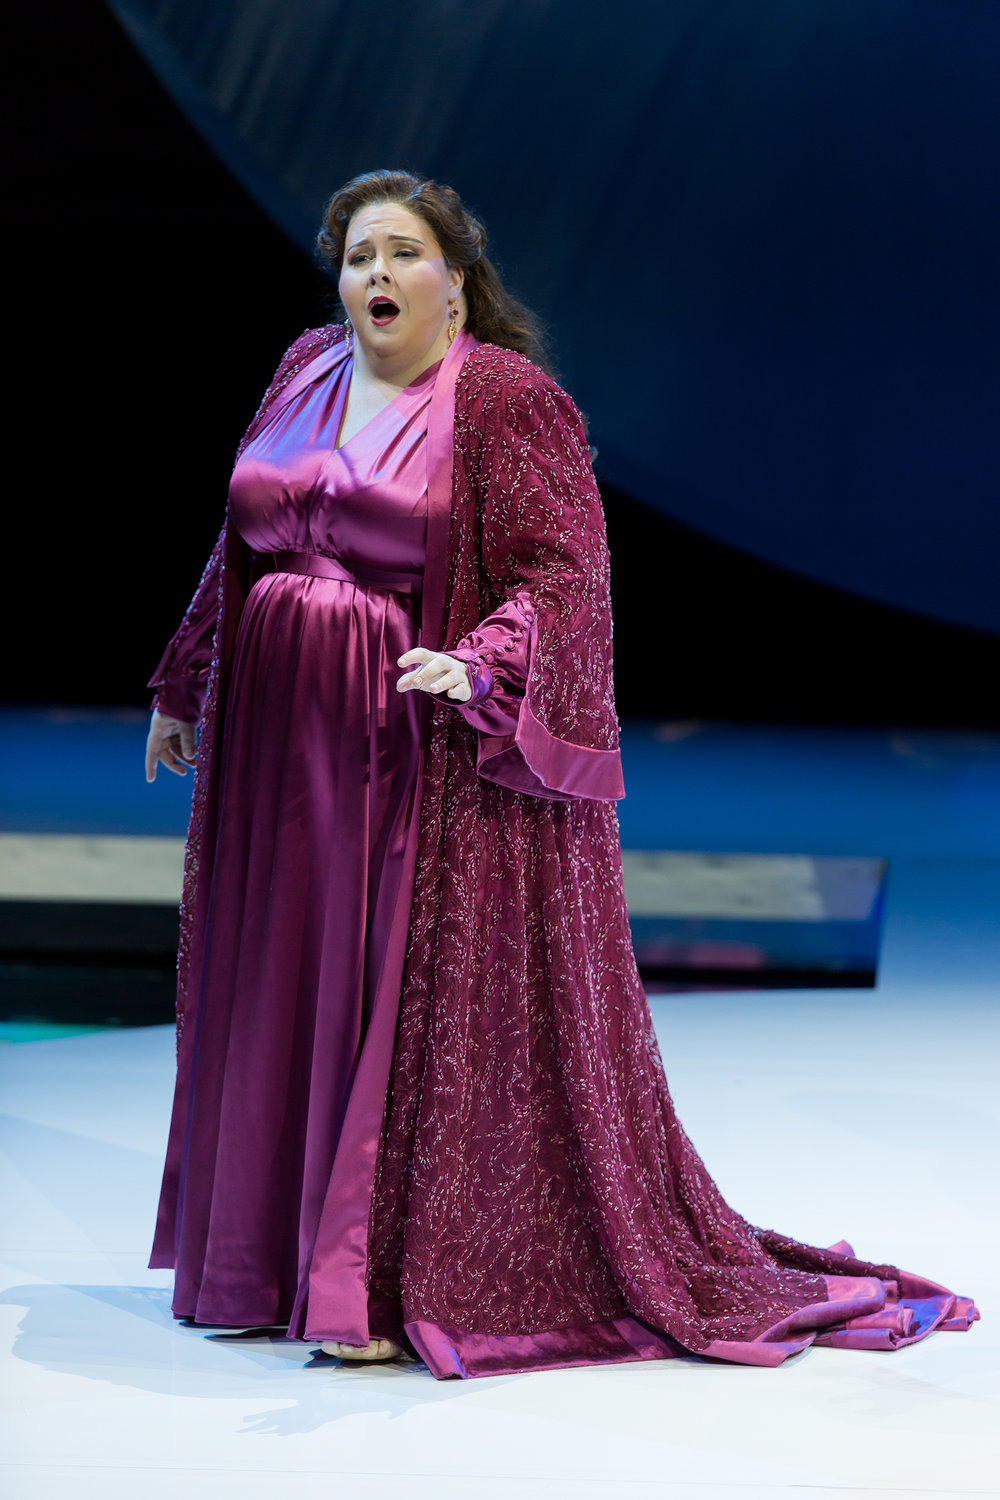 Angela Meade as Alcina. Photo by Scott Suchman; courtesy of Washington National Opera.